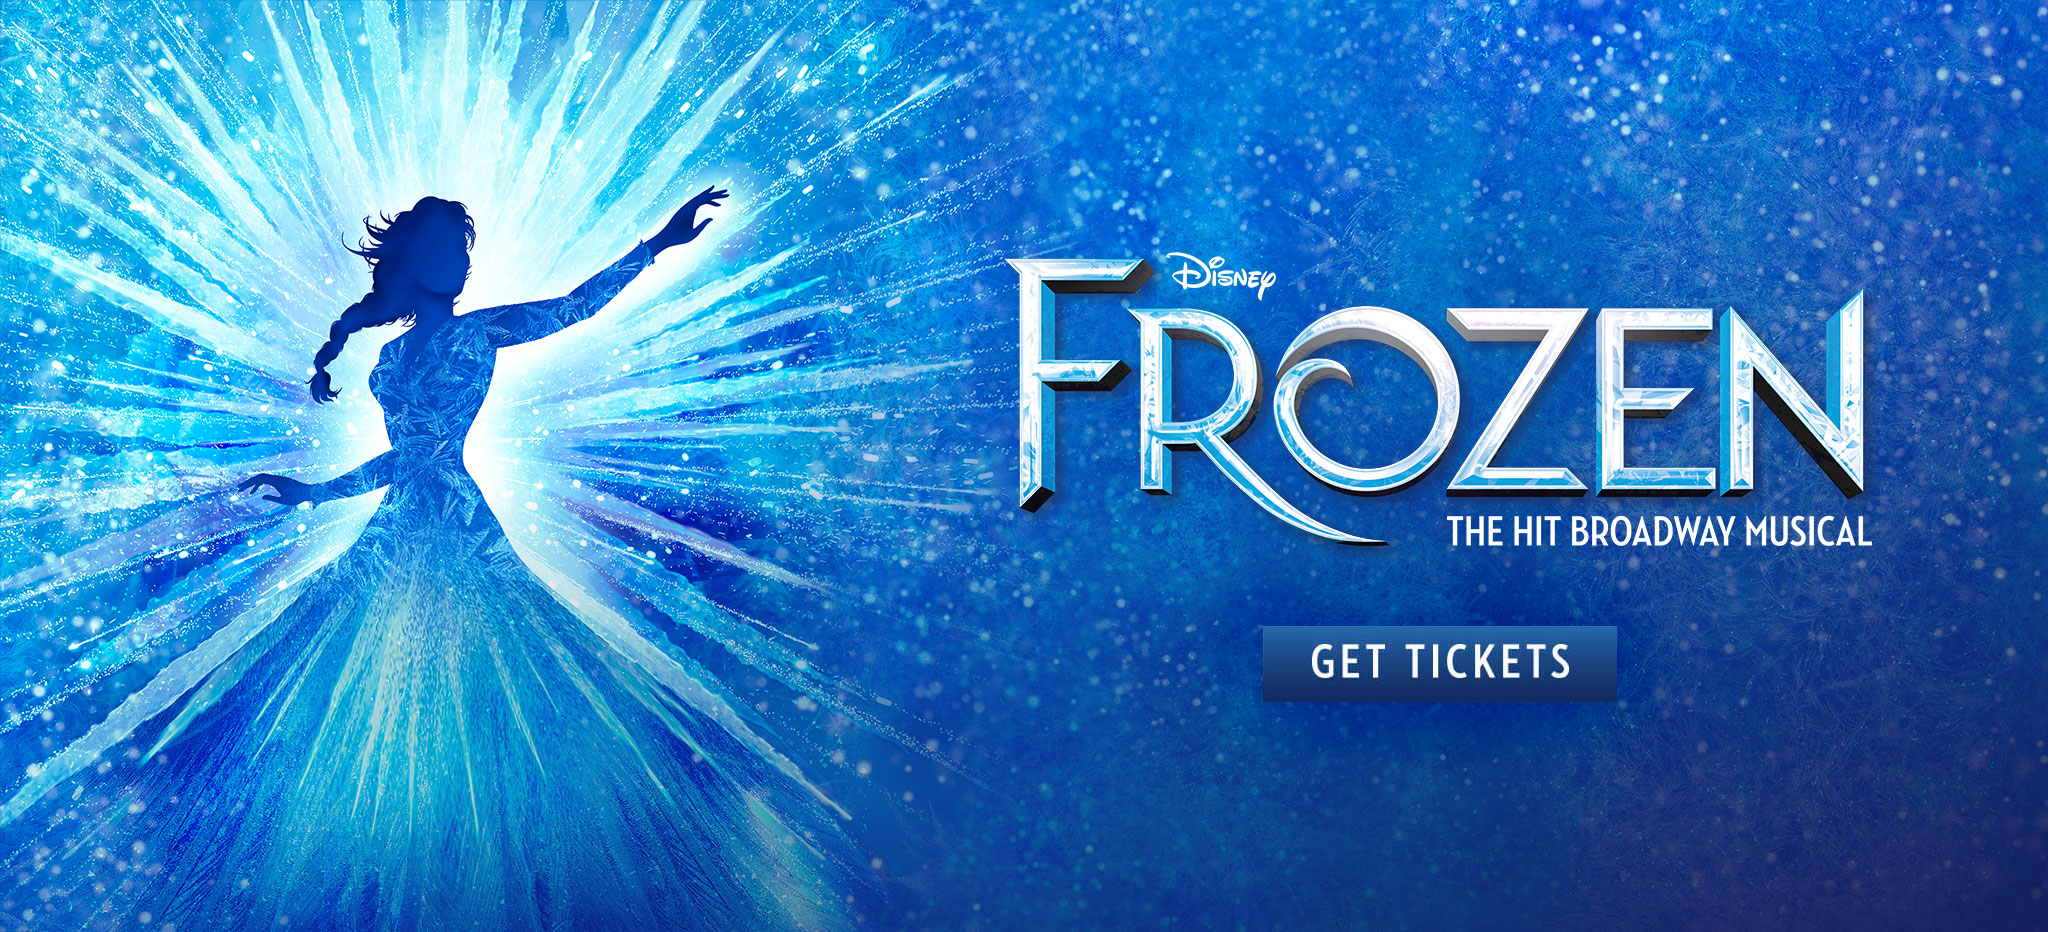 Disney FROZEN - The Hit Broadway Musical - Get Tickets